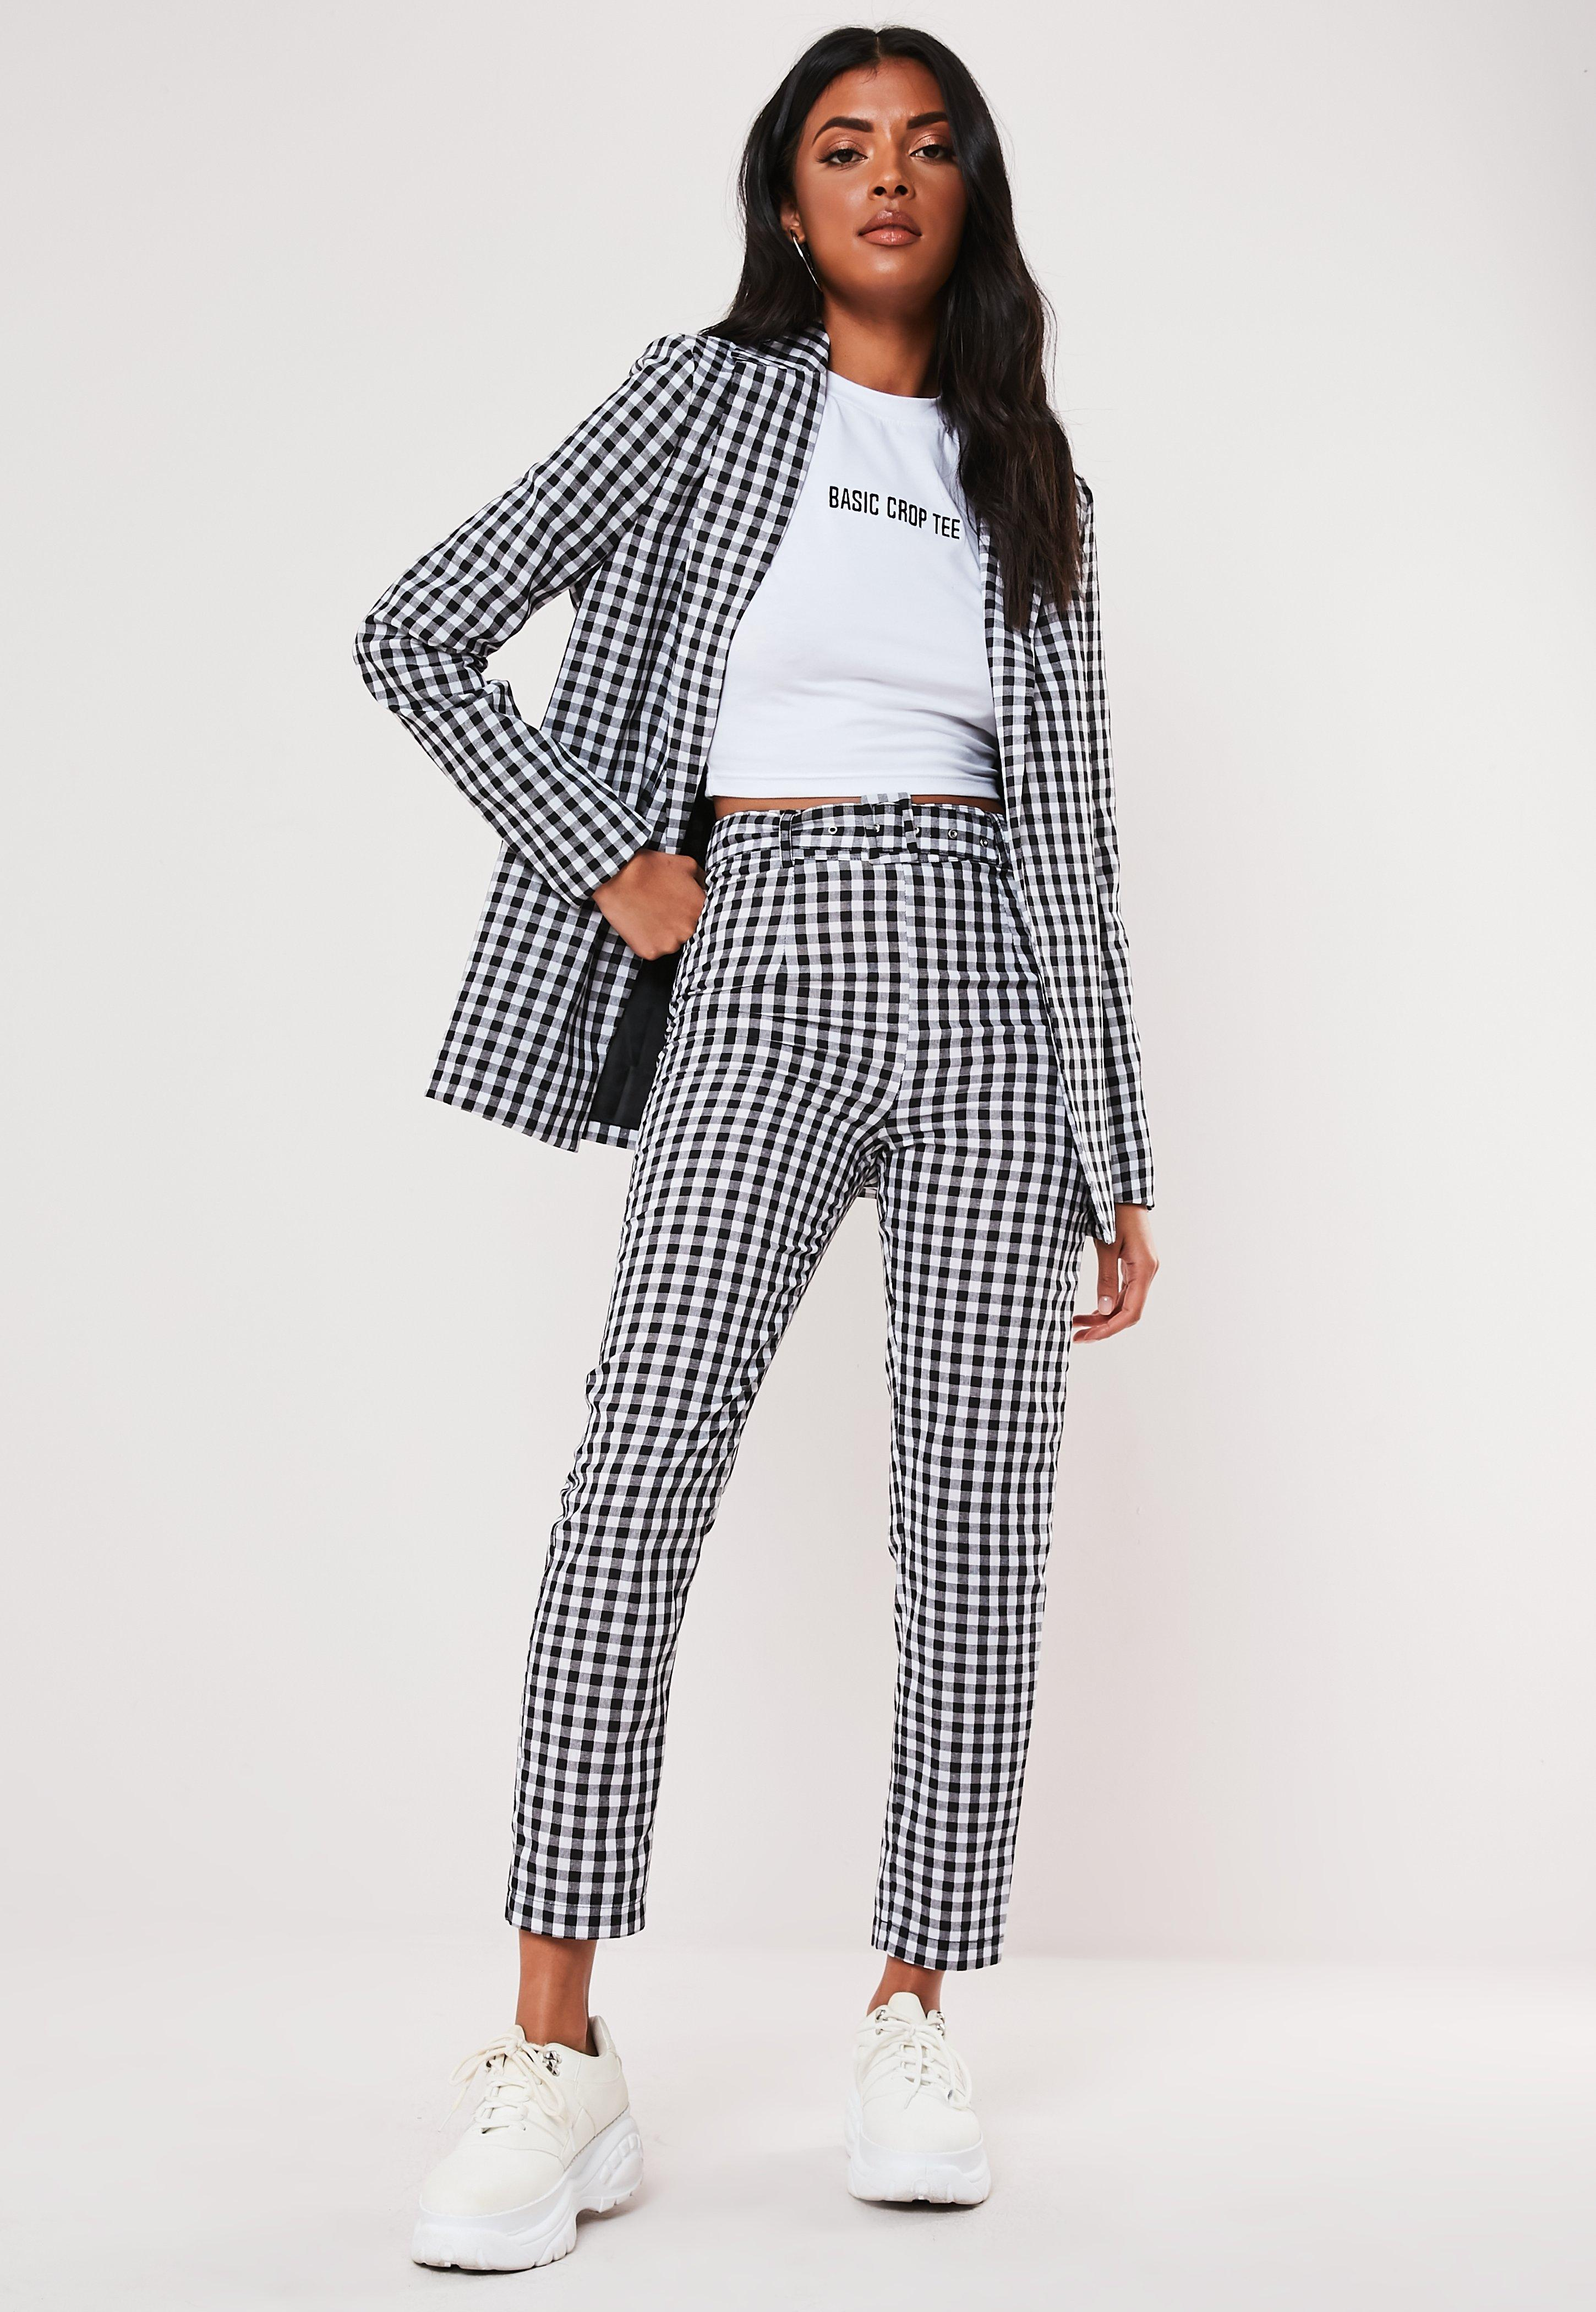 c3ed00bd5 Two Piece Sets - Two Piece Dresses, Co-ords & Outfits | Missguided